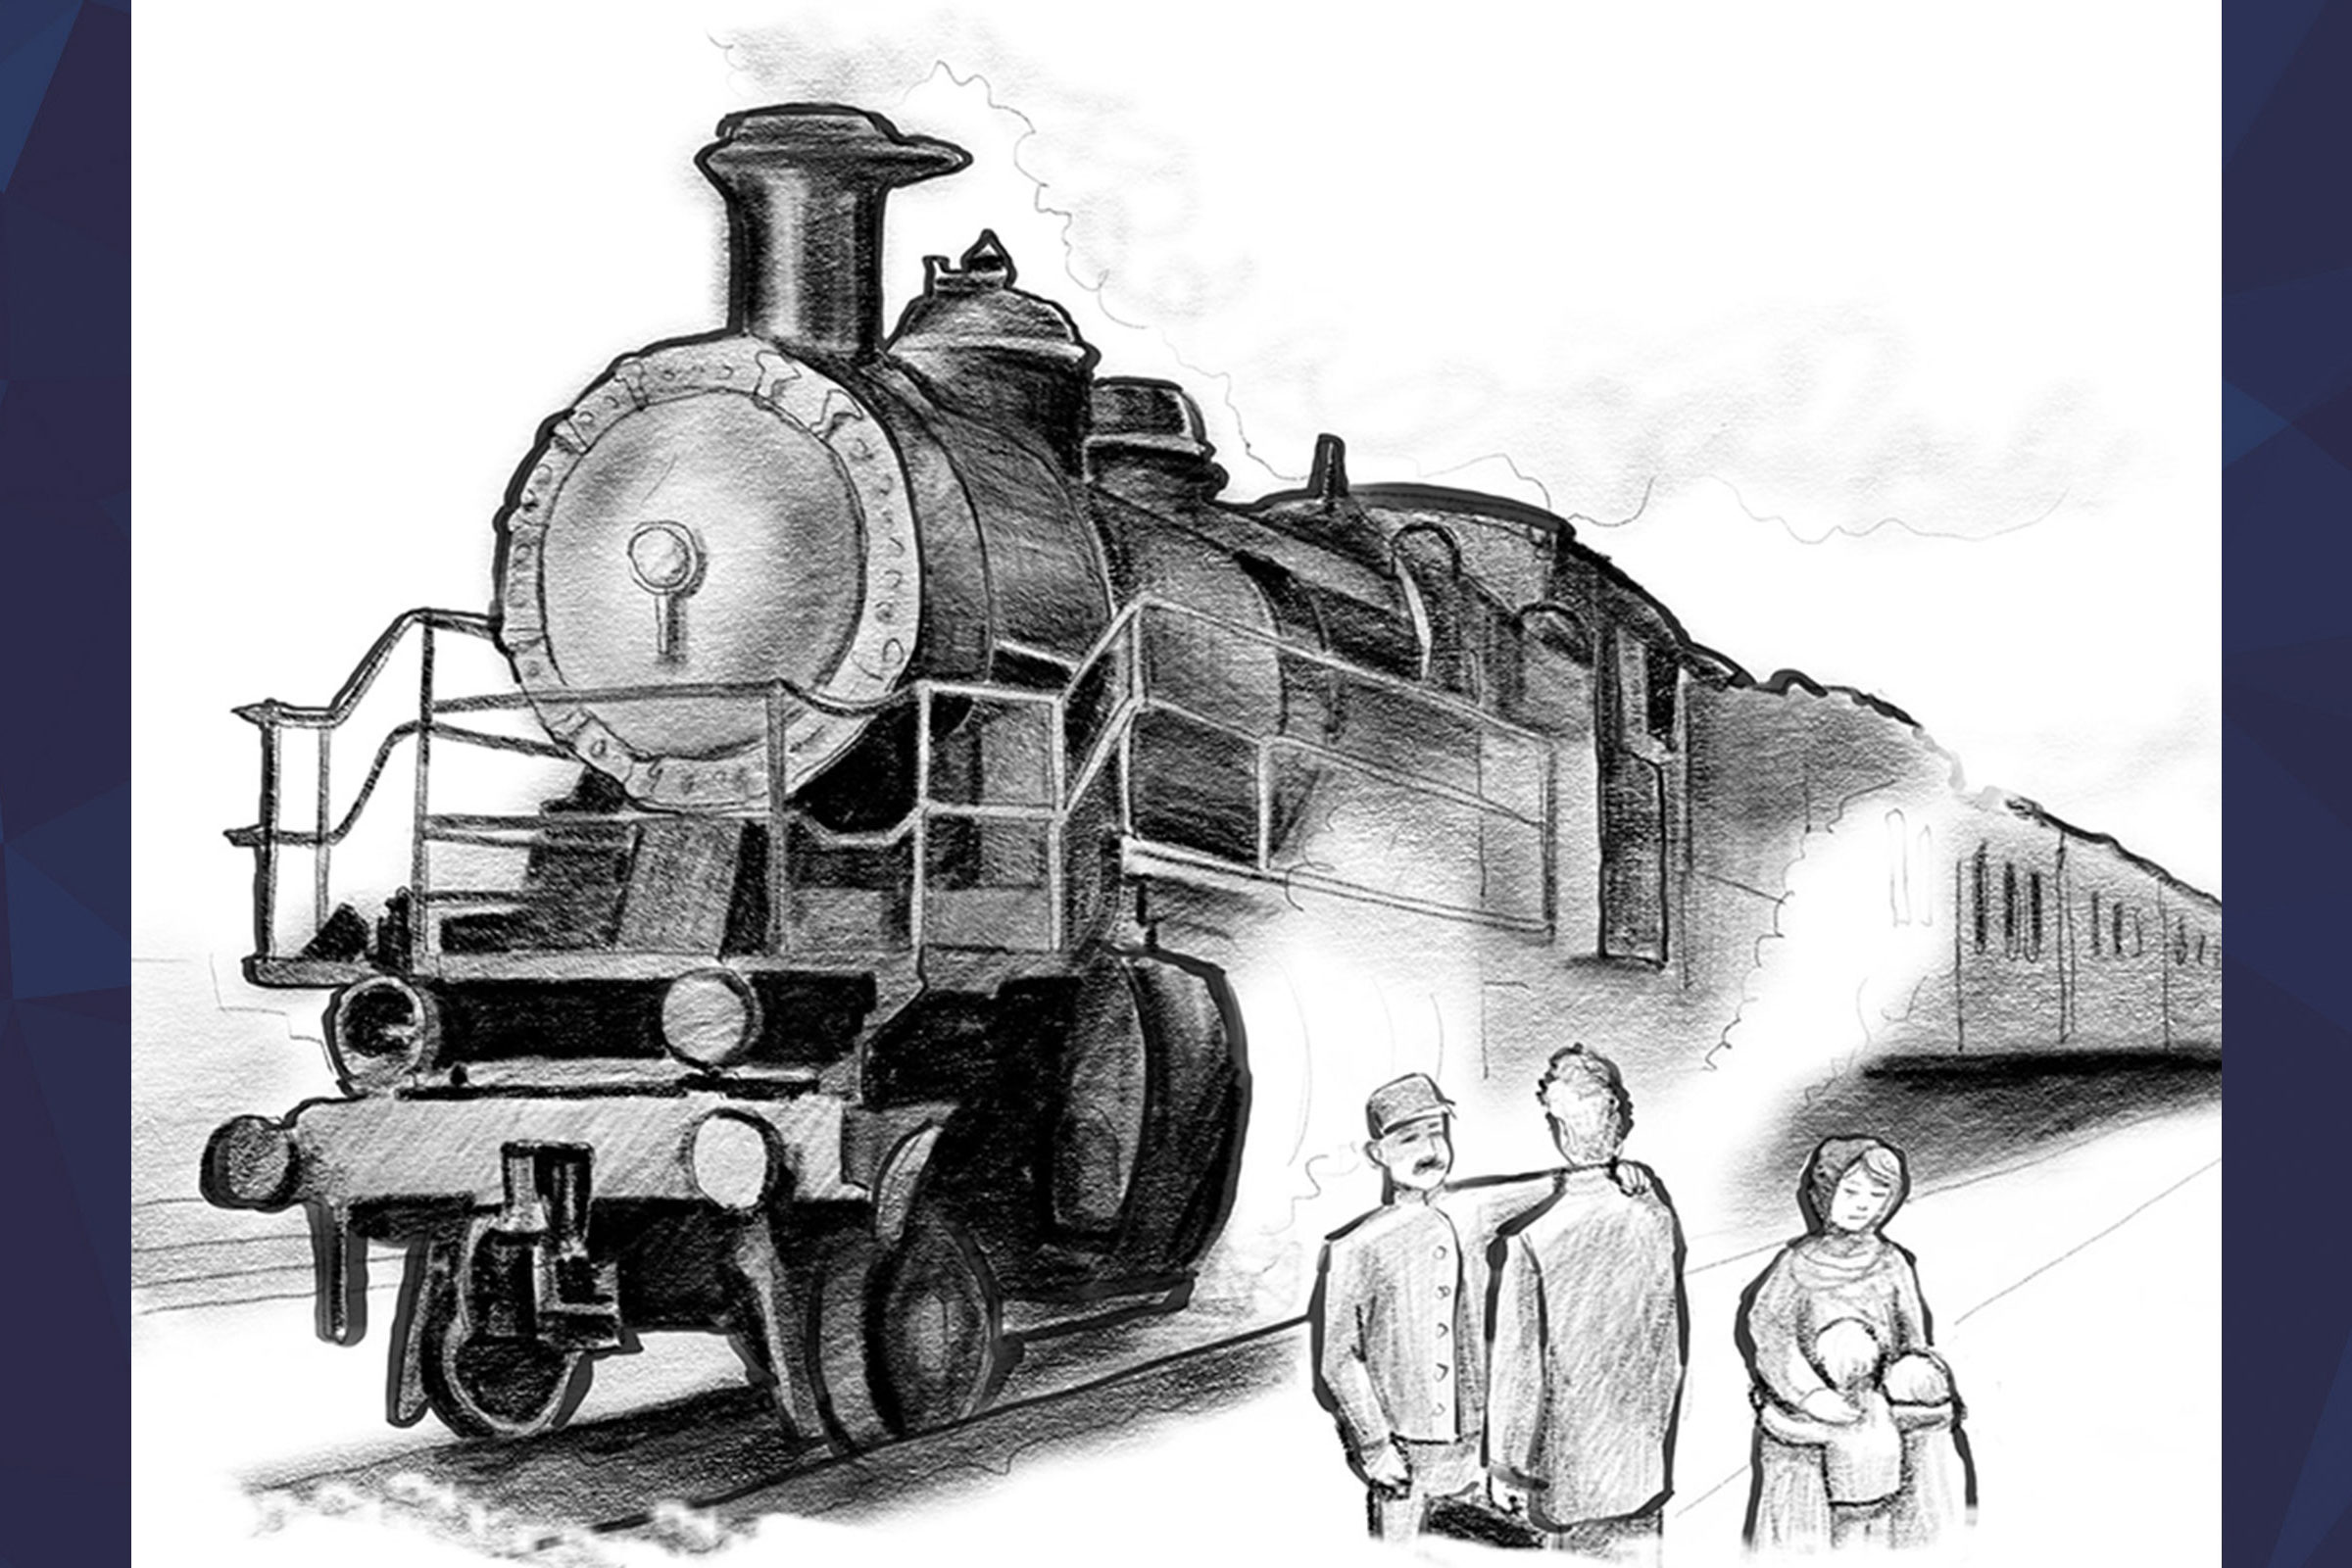 Illustration of train on the track